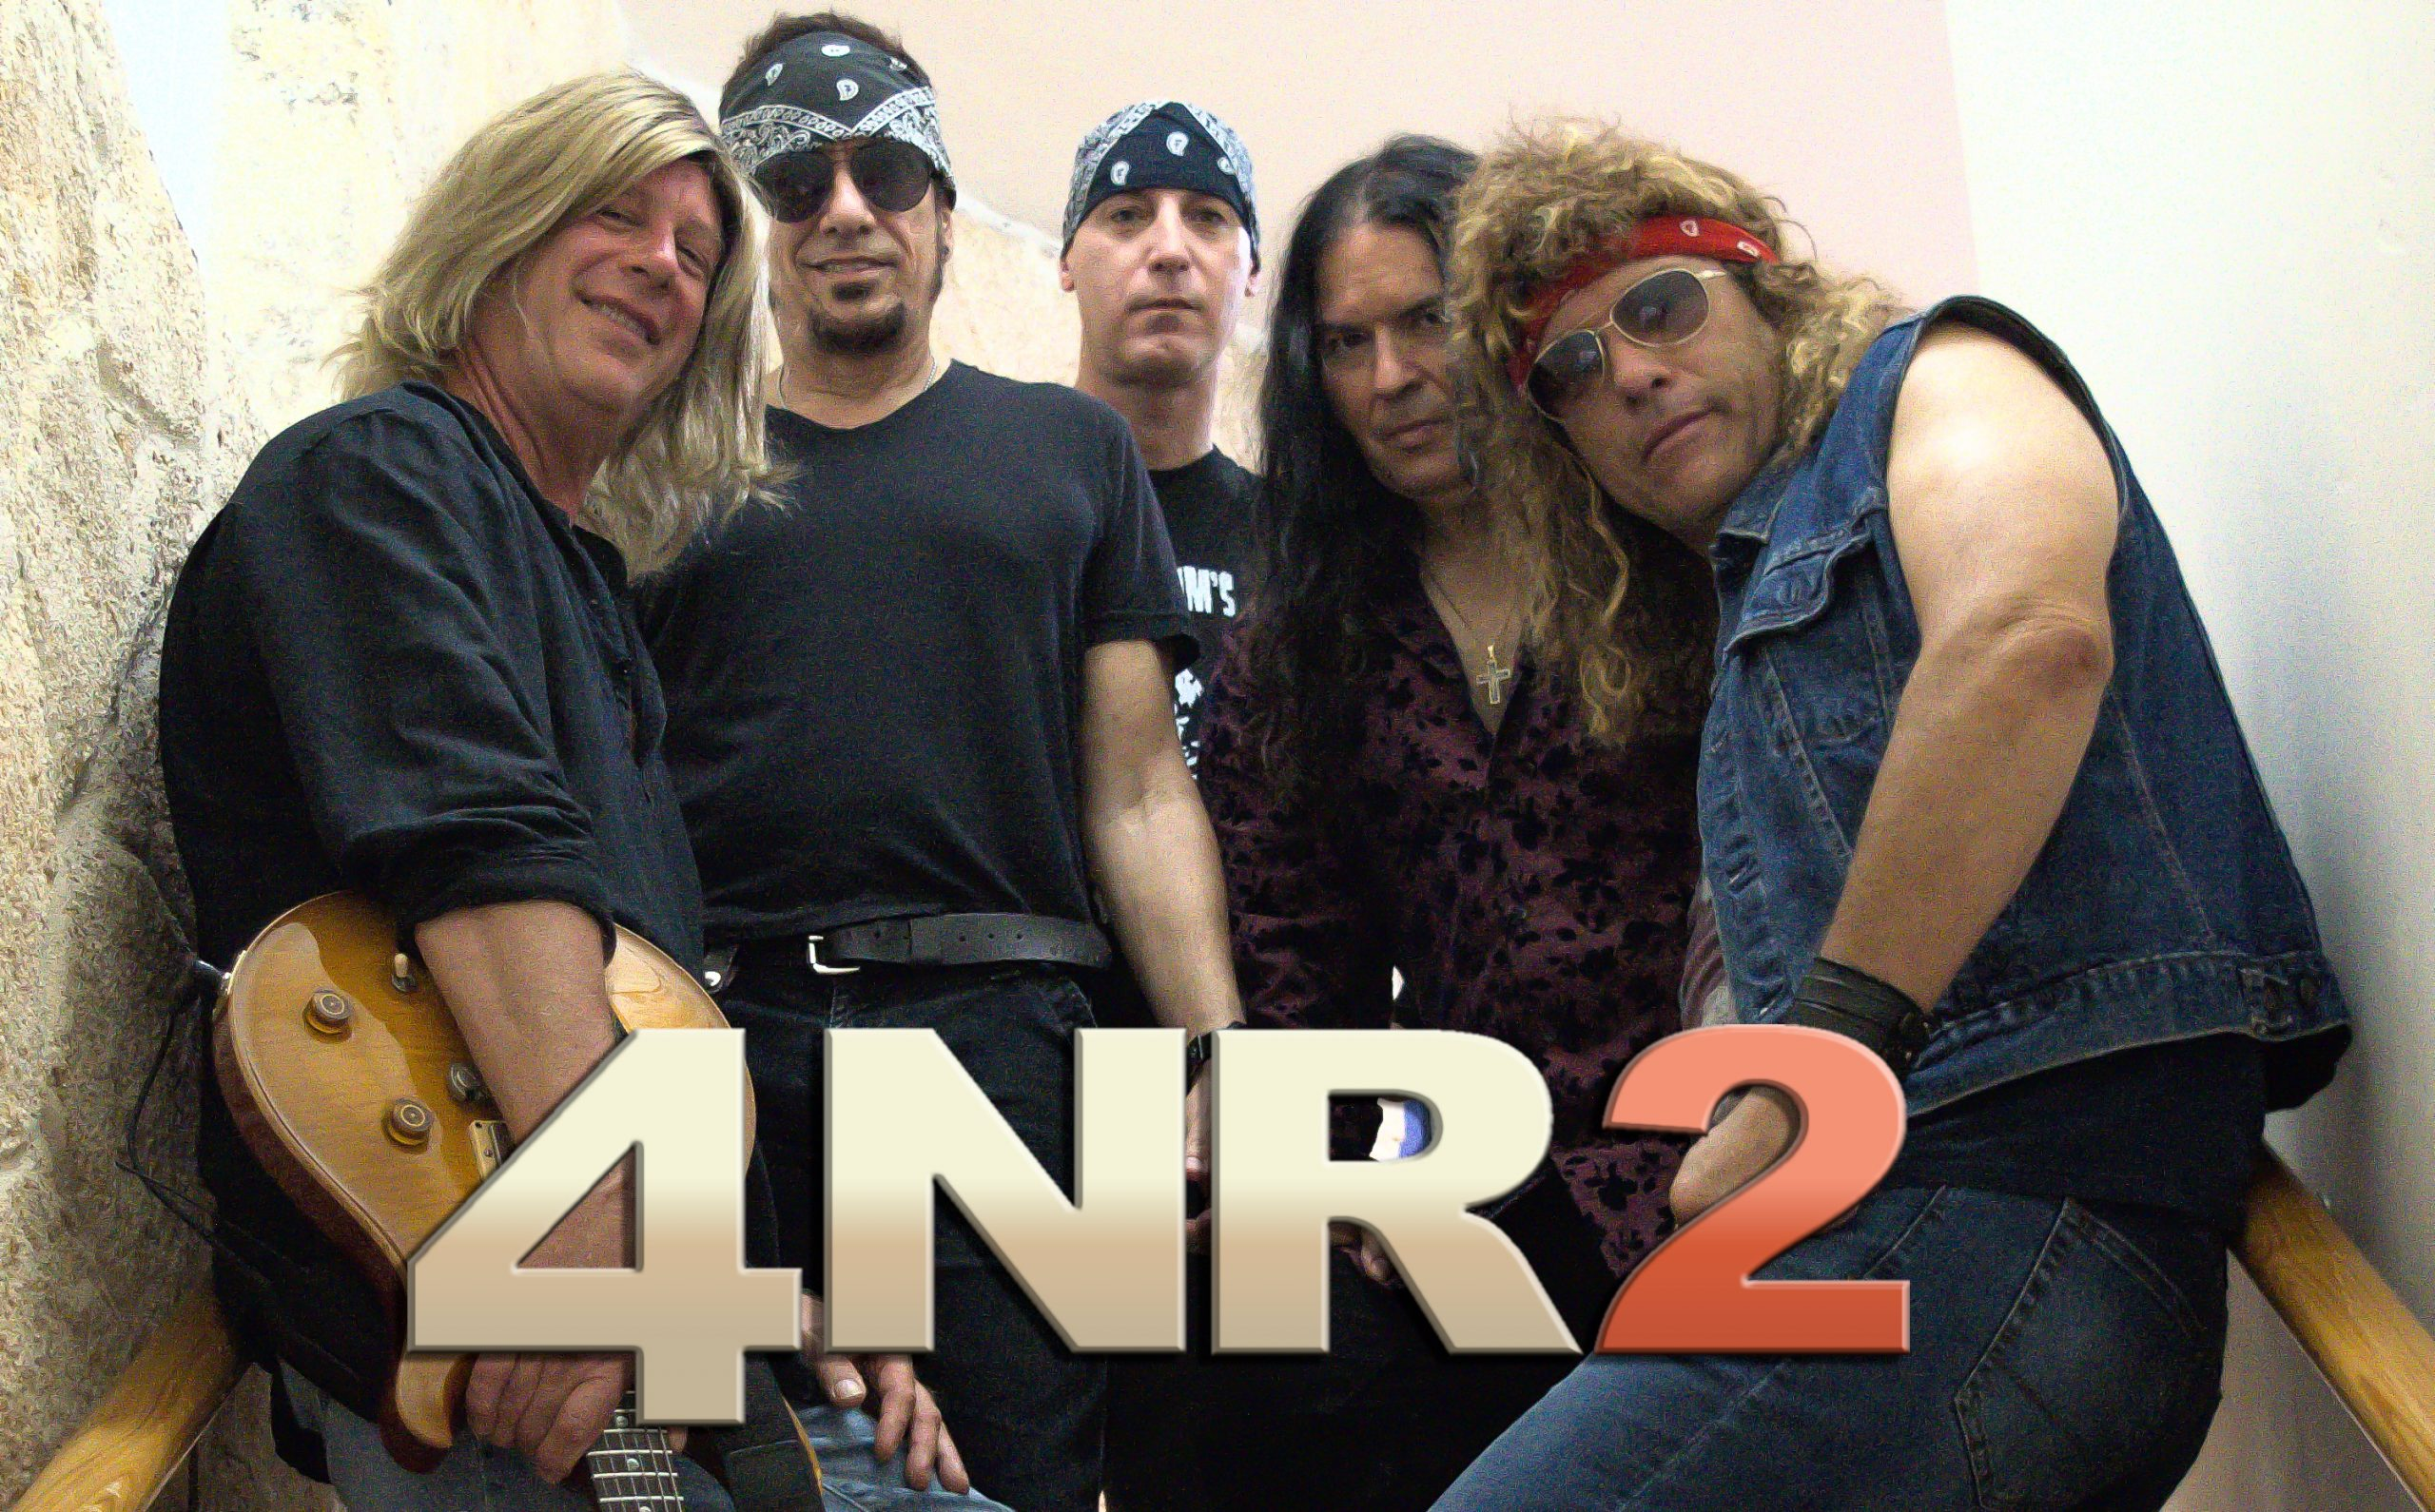 4NR2: The Foreigner Tribute Band